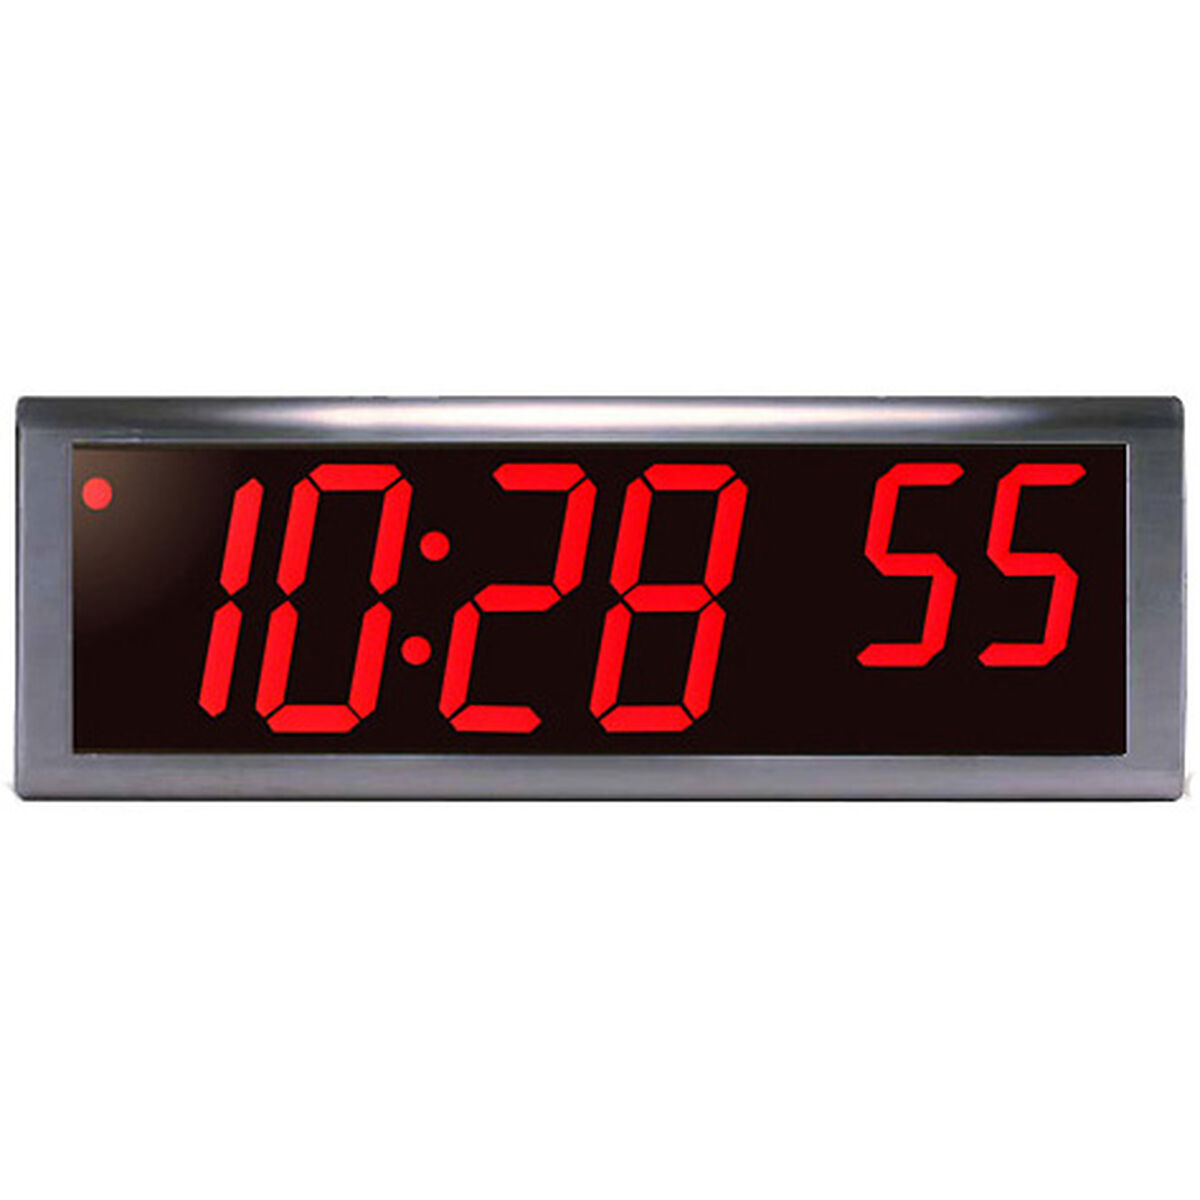 Digital wall clocks 6 digit 4 red led stainless steel poe clock amipublicfo Images